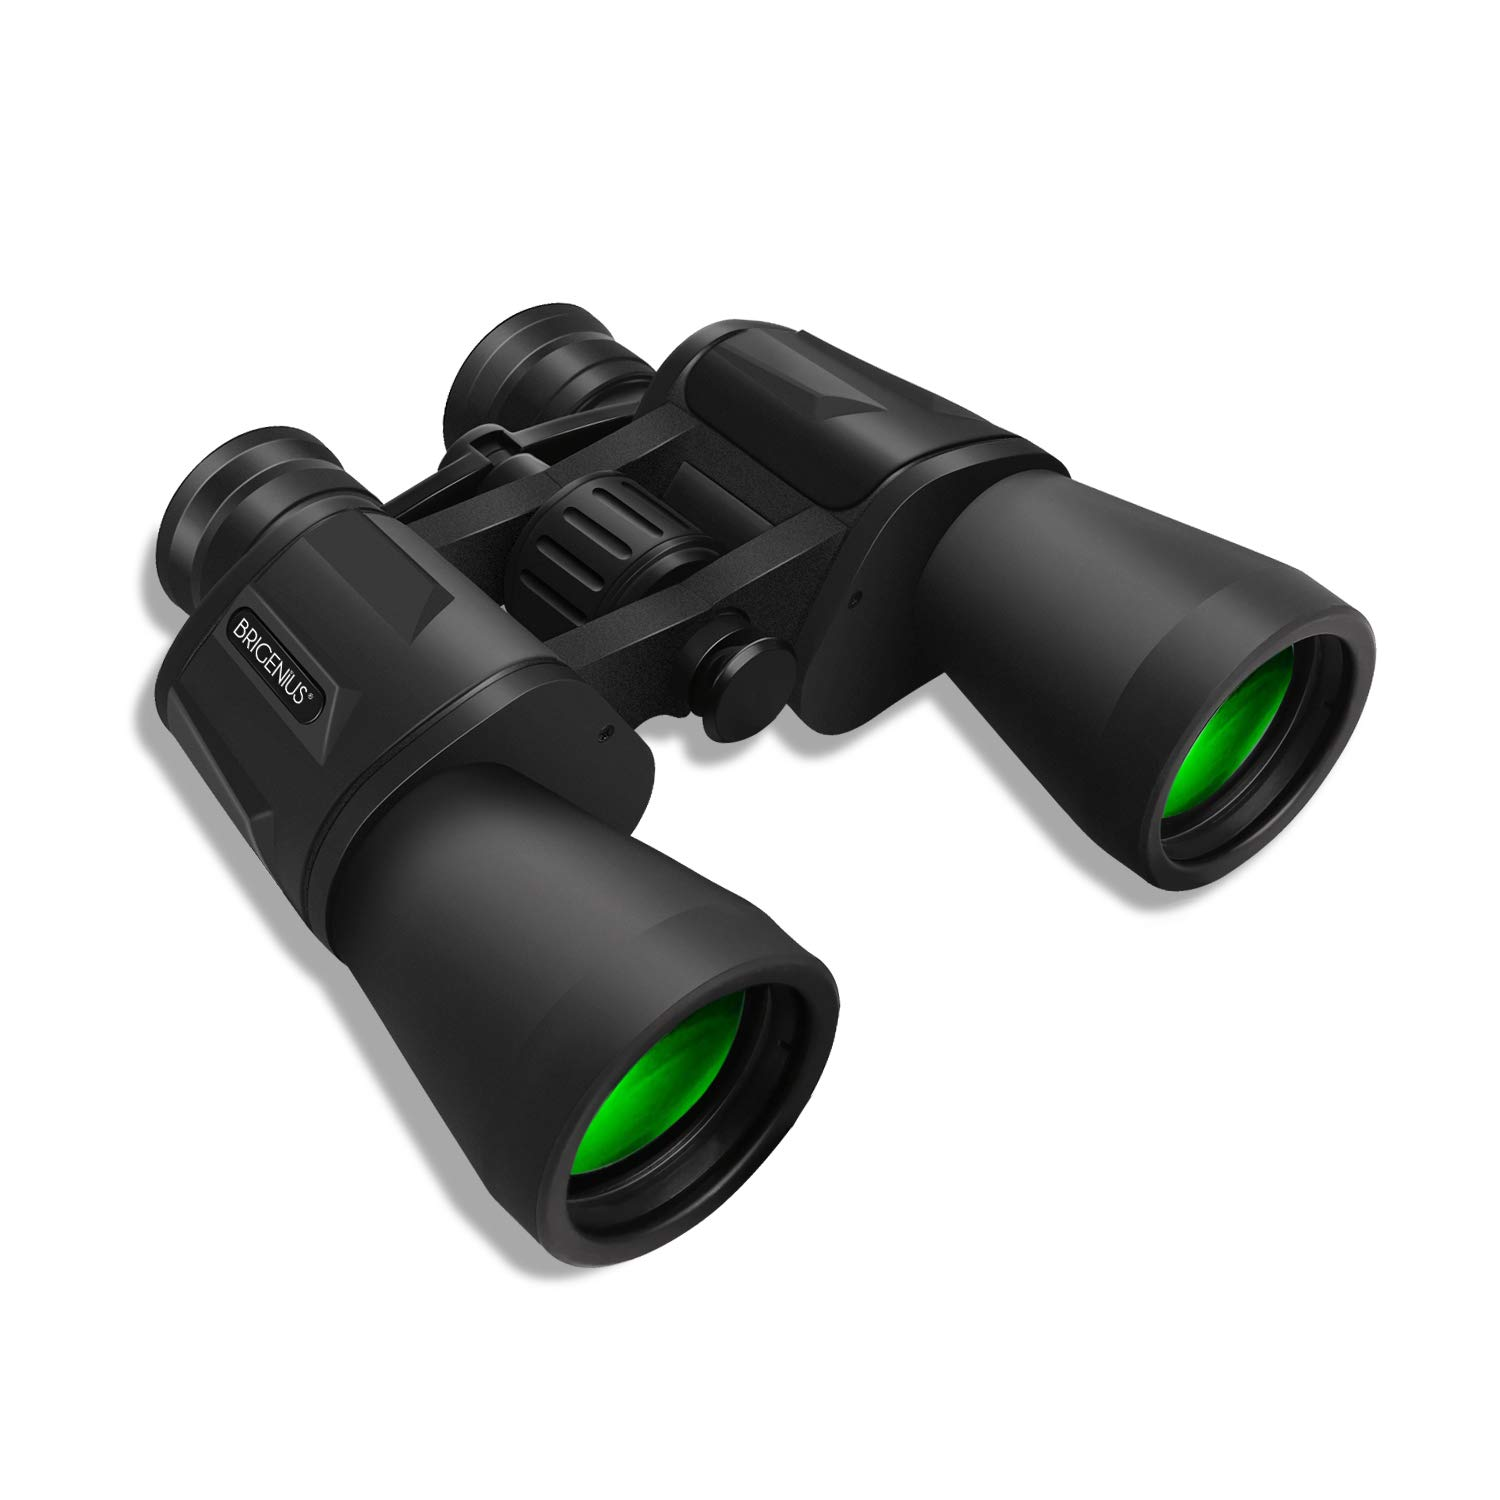 BRIGENIUS 10 x 50 Powerful Binoculars for Adults, Durable Full-Size Clear Binoculars for Bird Watching Travel Sightseeing Hunting Wildlife Watching Outdoor Sports Games and Concerts by BRIGENIUS